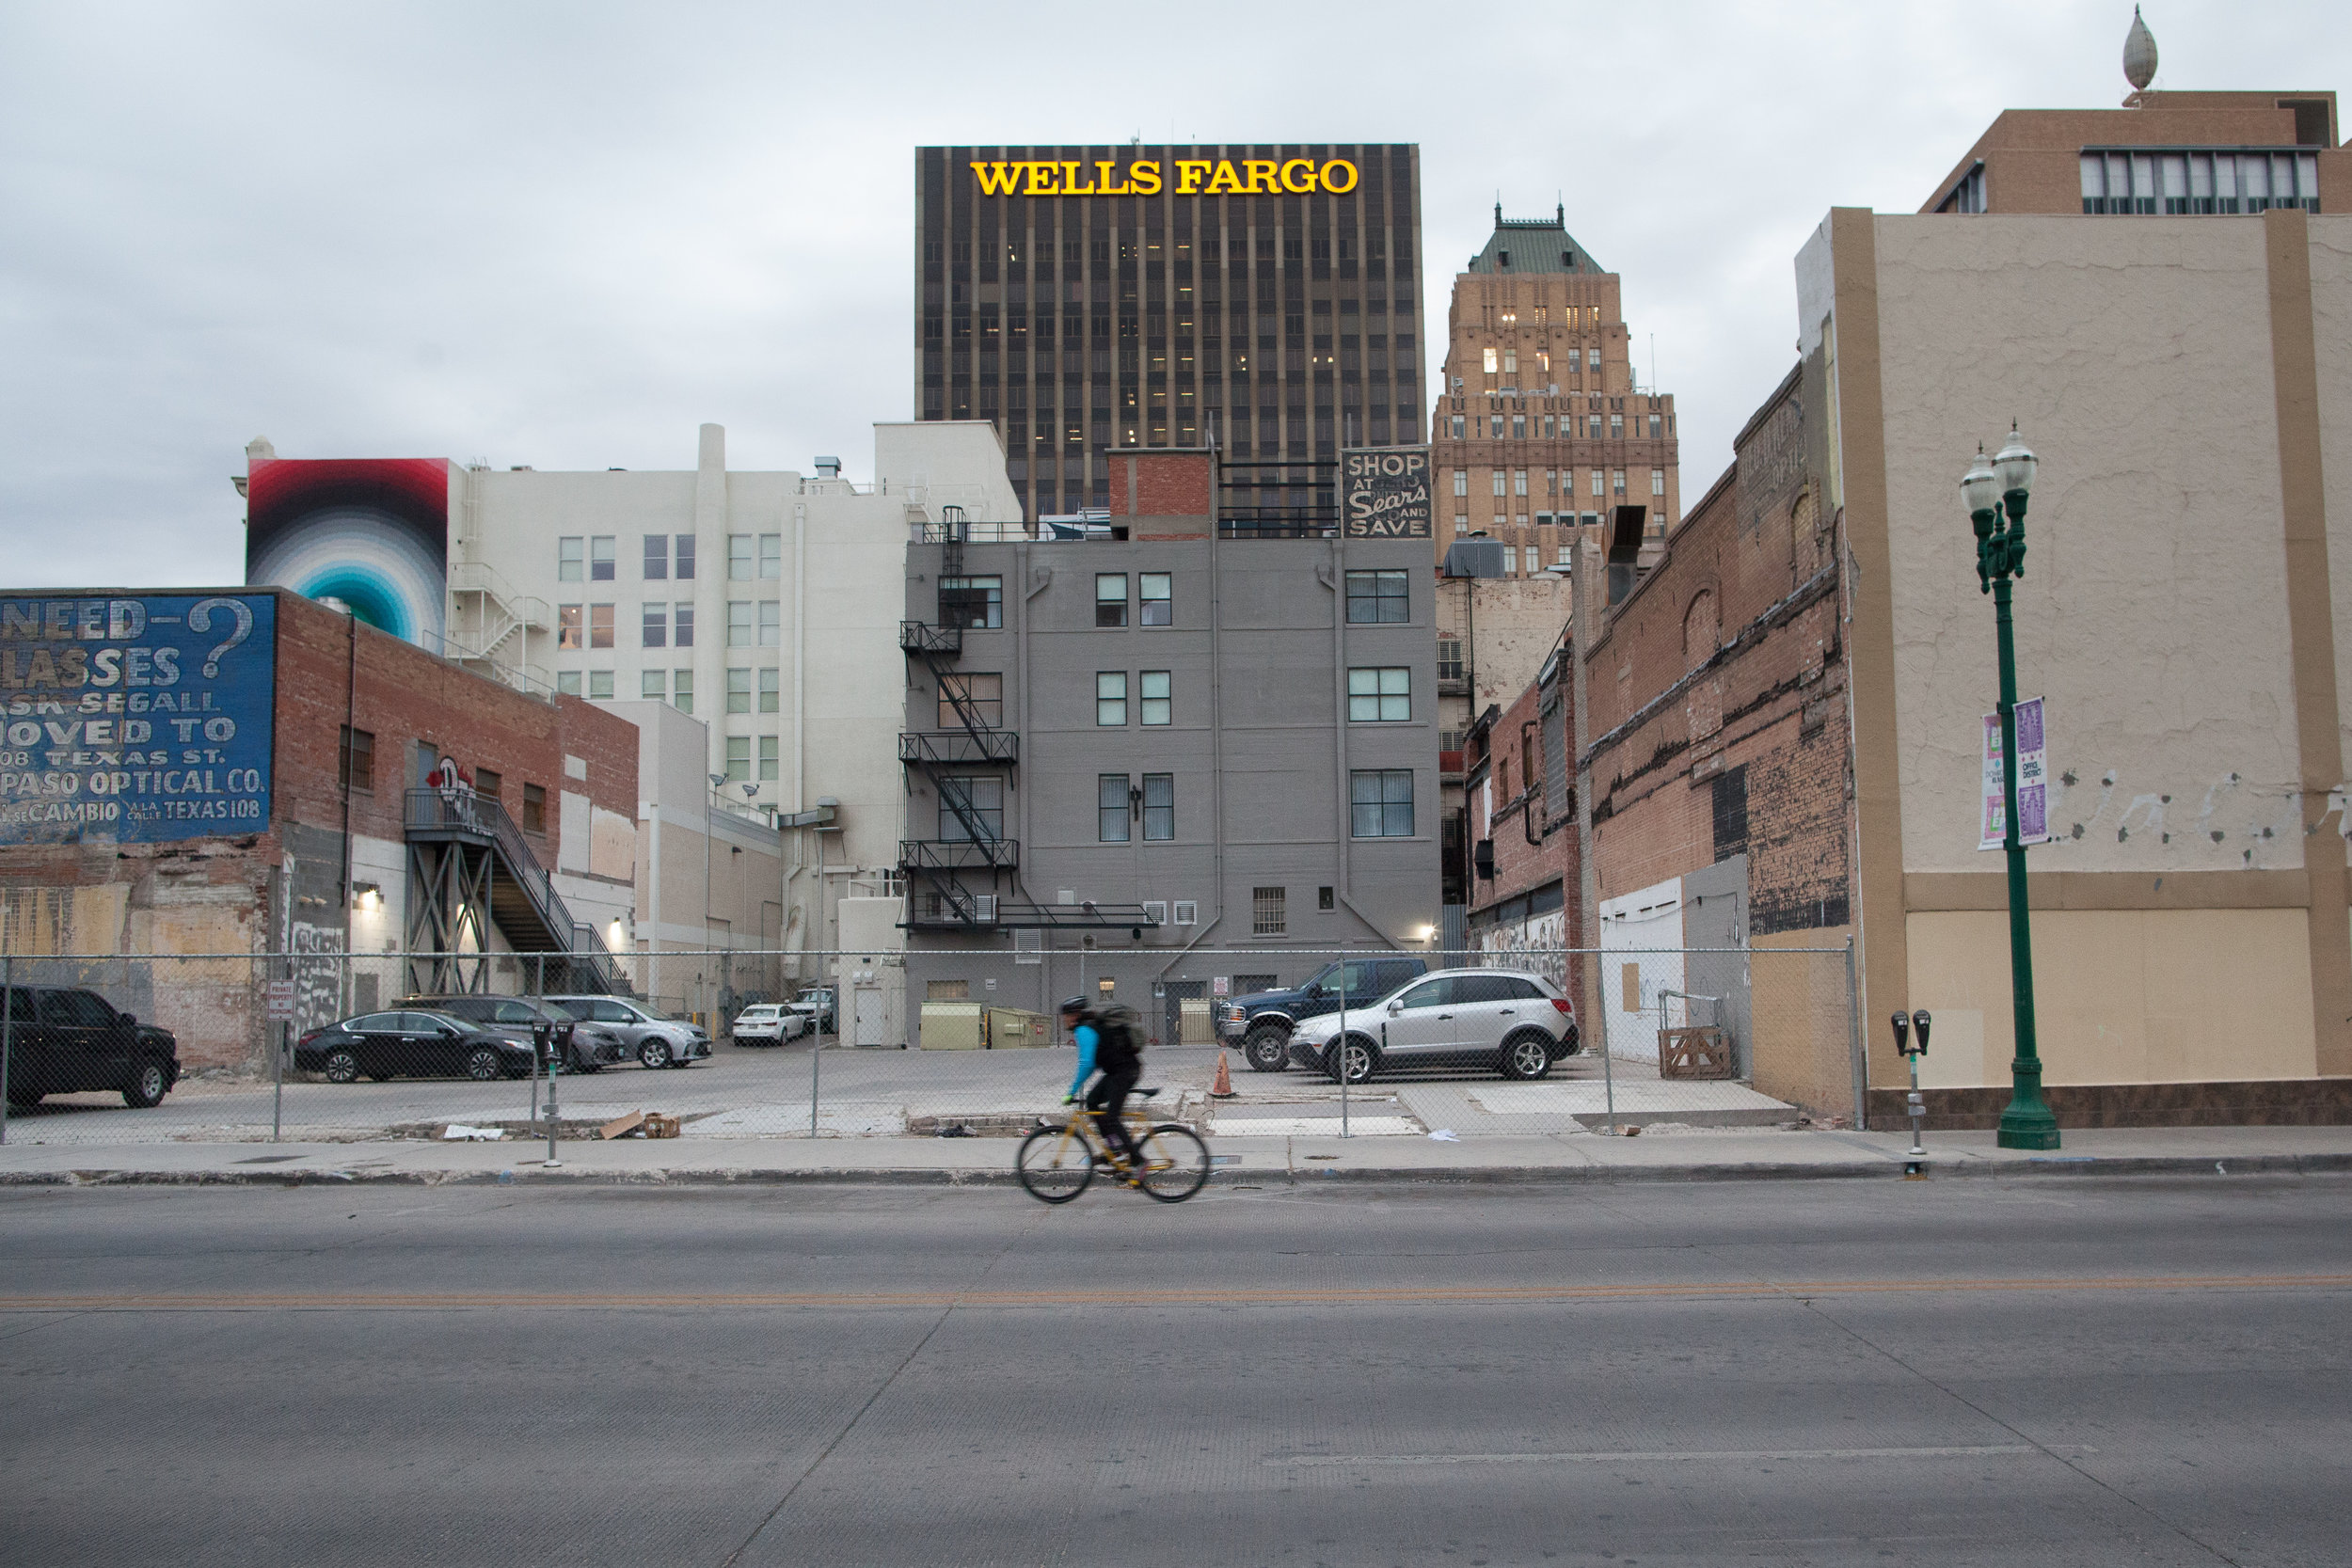 Issue No. 6 - August 10, 2019El Paso, TXSneak Peek: West Memphis, ARRoadside Assistance: Looking for suburban homes and office park officesA Photographer You Should Know: Tyler HicksThe Editor's Note: A Tale of Two El Paso's